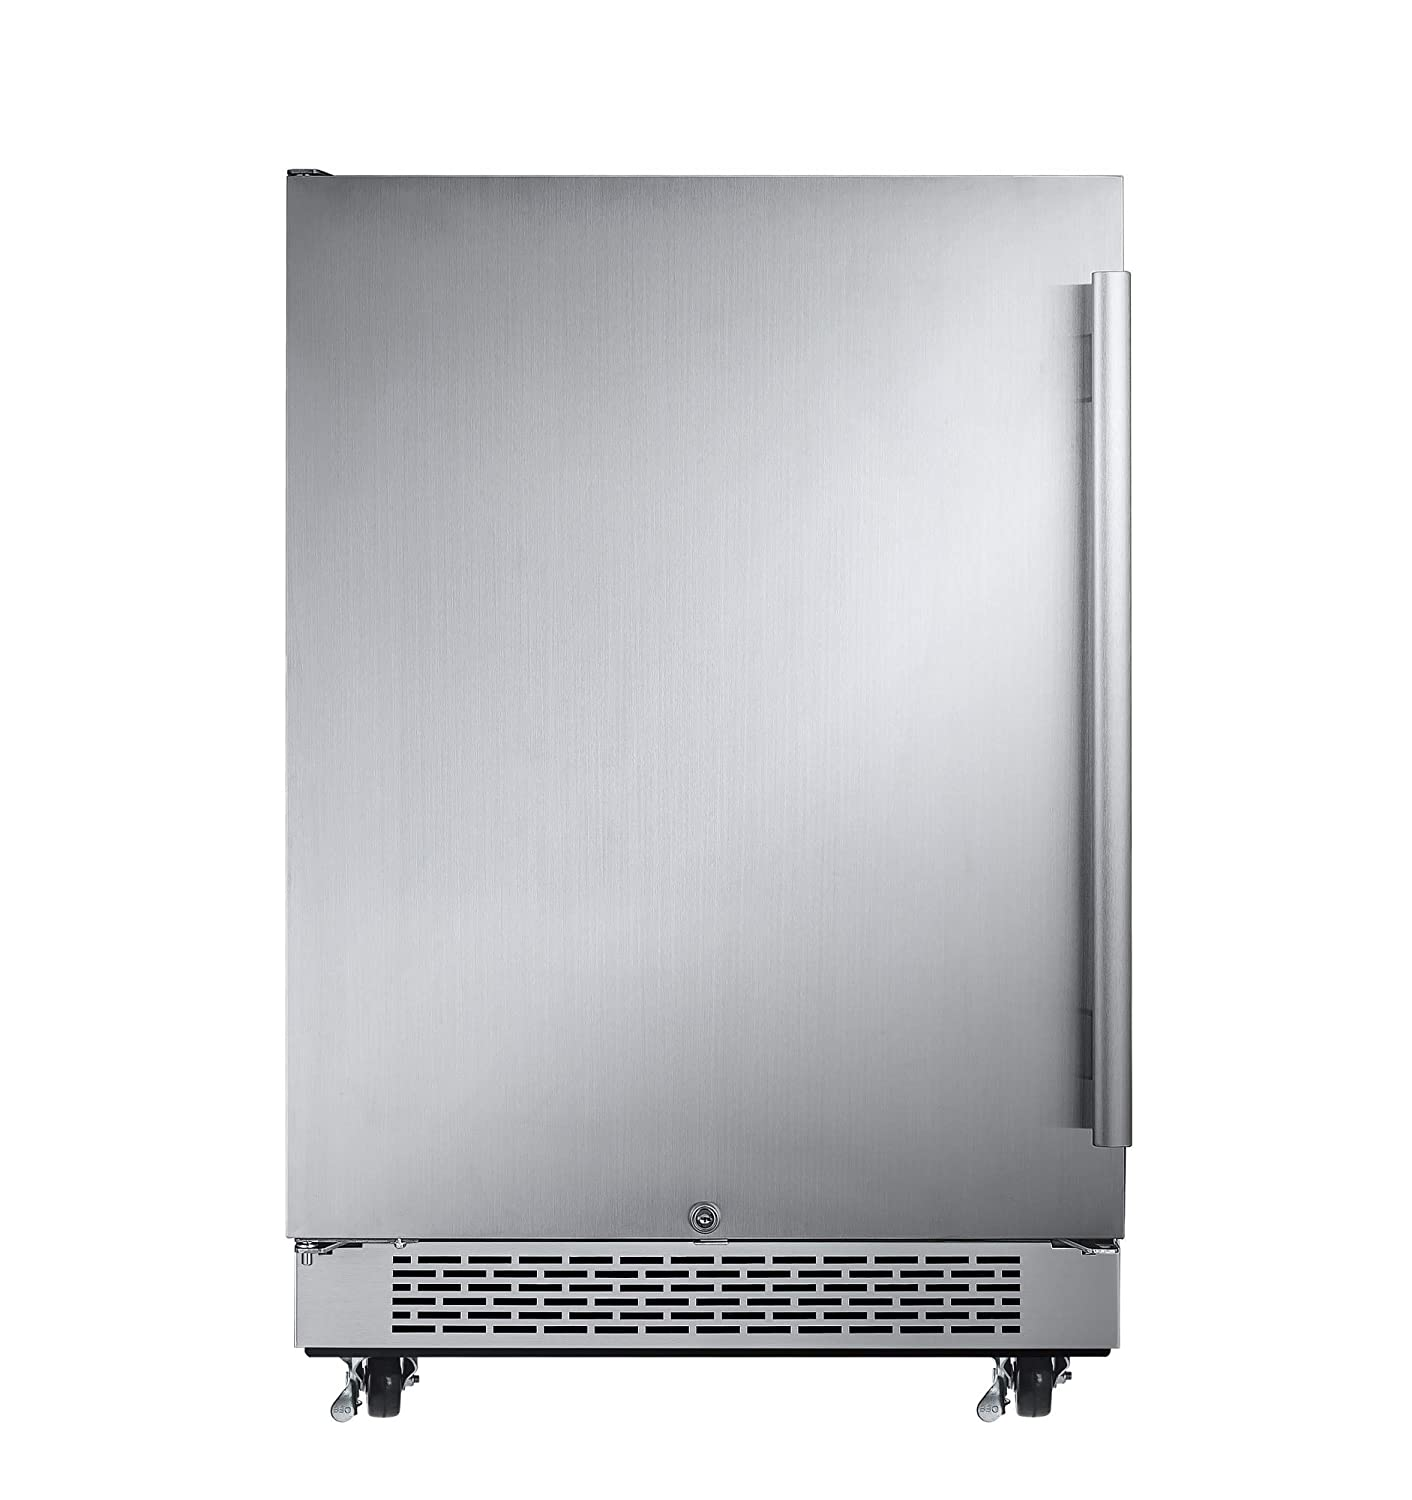 Avallon AFR241SSODLH 5.5 Cu Ft 24 Outdoor Built-in Refrigerator – Left Hinge